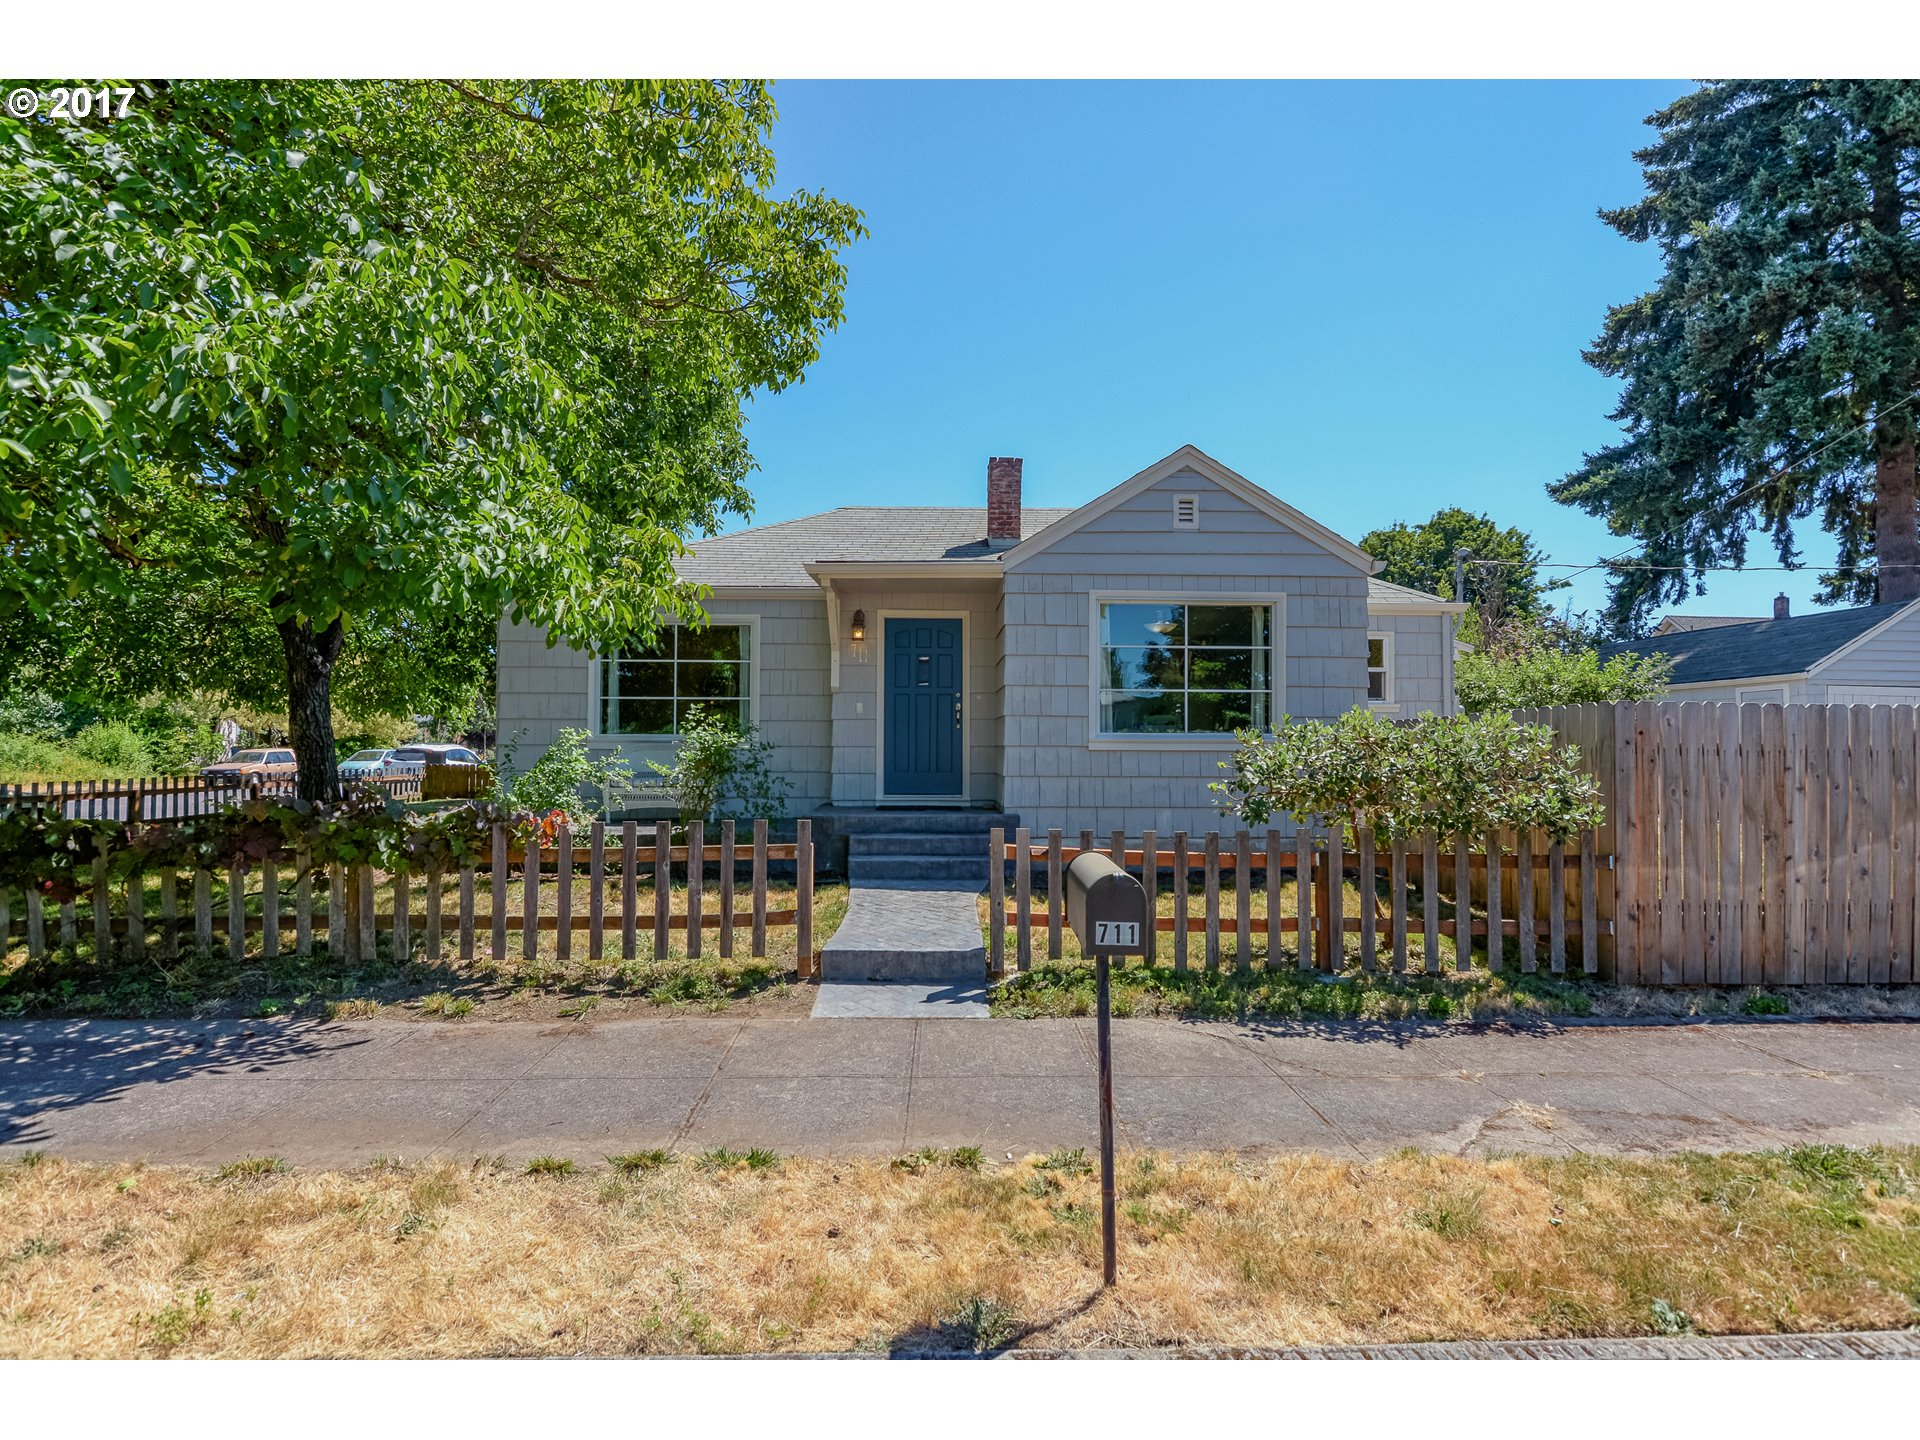 711 WINCHELL AVE, Vancouver, WA 98661